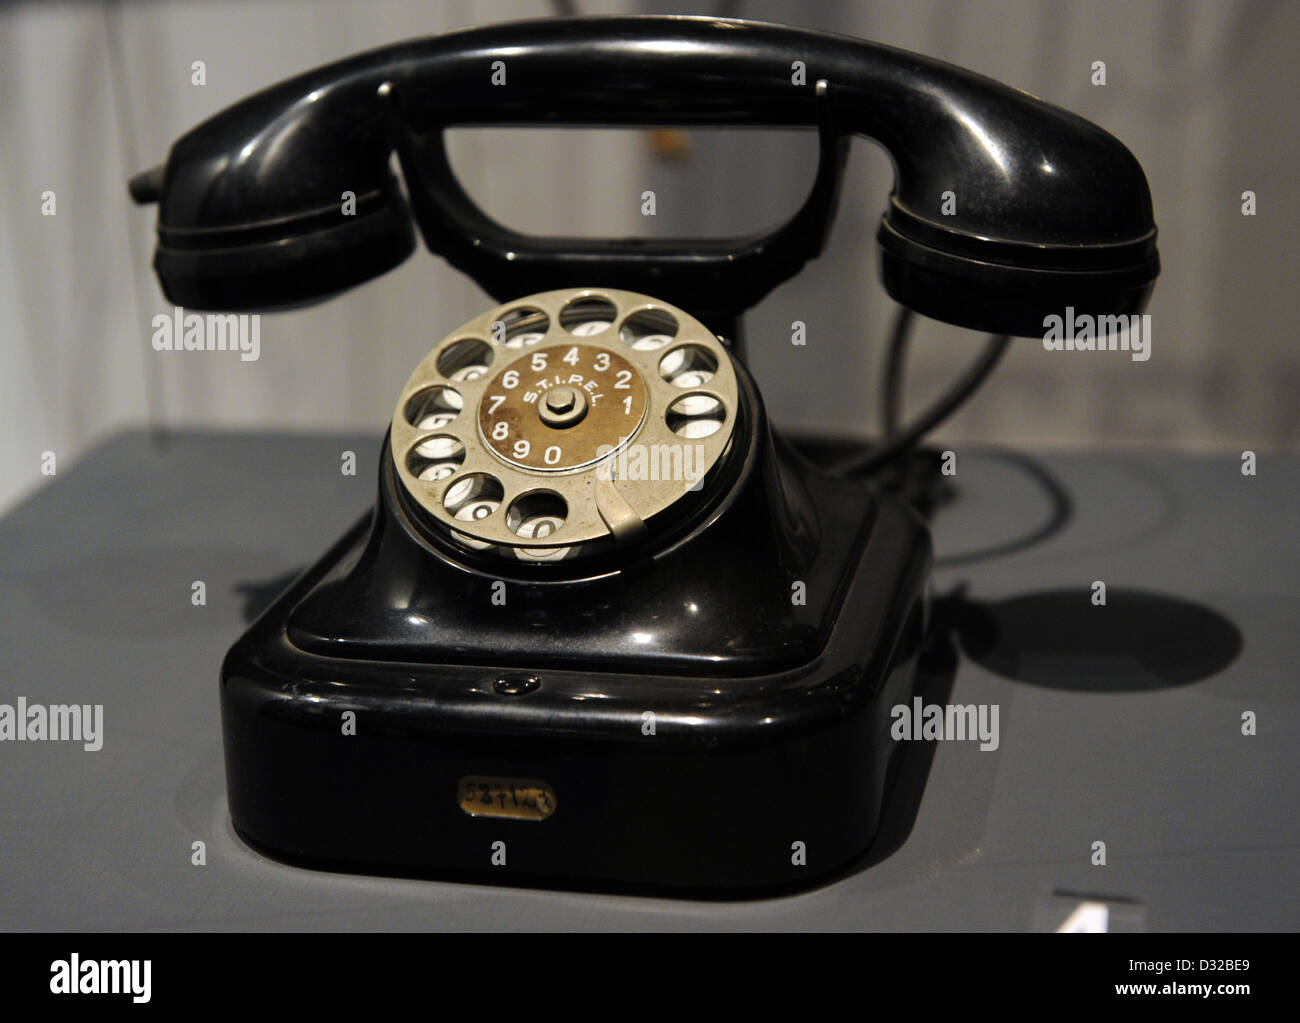 Automatic central battery telephone. Model 27. Siemens. 1927. Milan - Stock Image